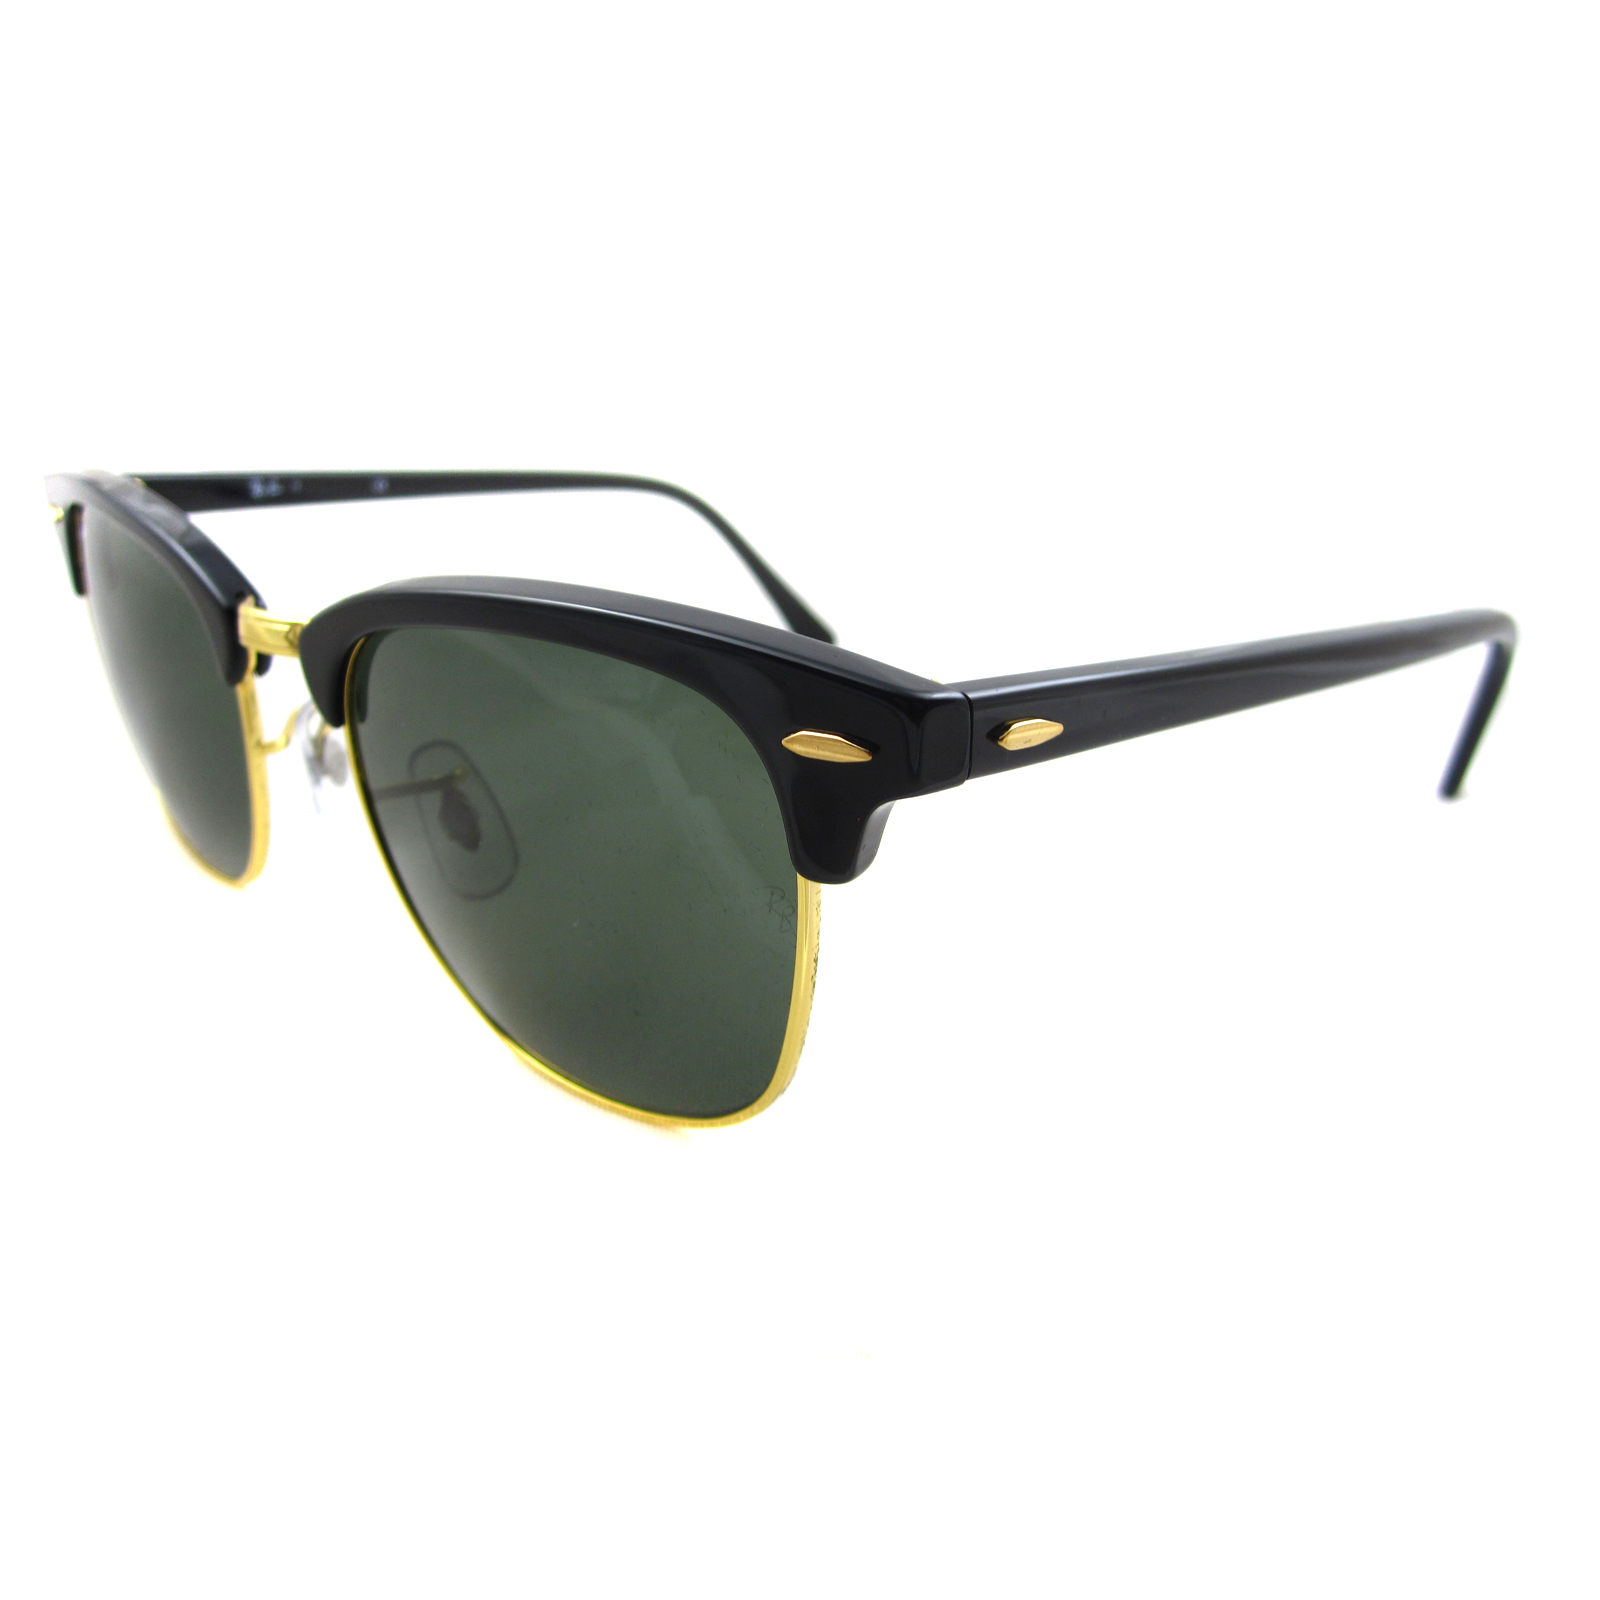 c7363a07ab3 Ray Bans Clubmaster Amazon Coupon Codes « Heritage Malta